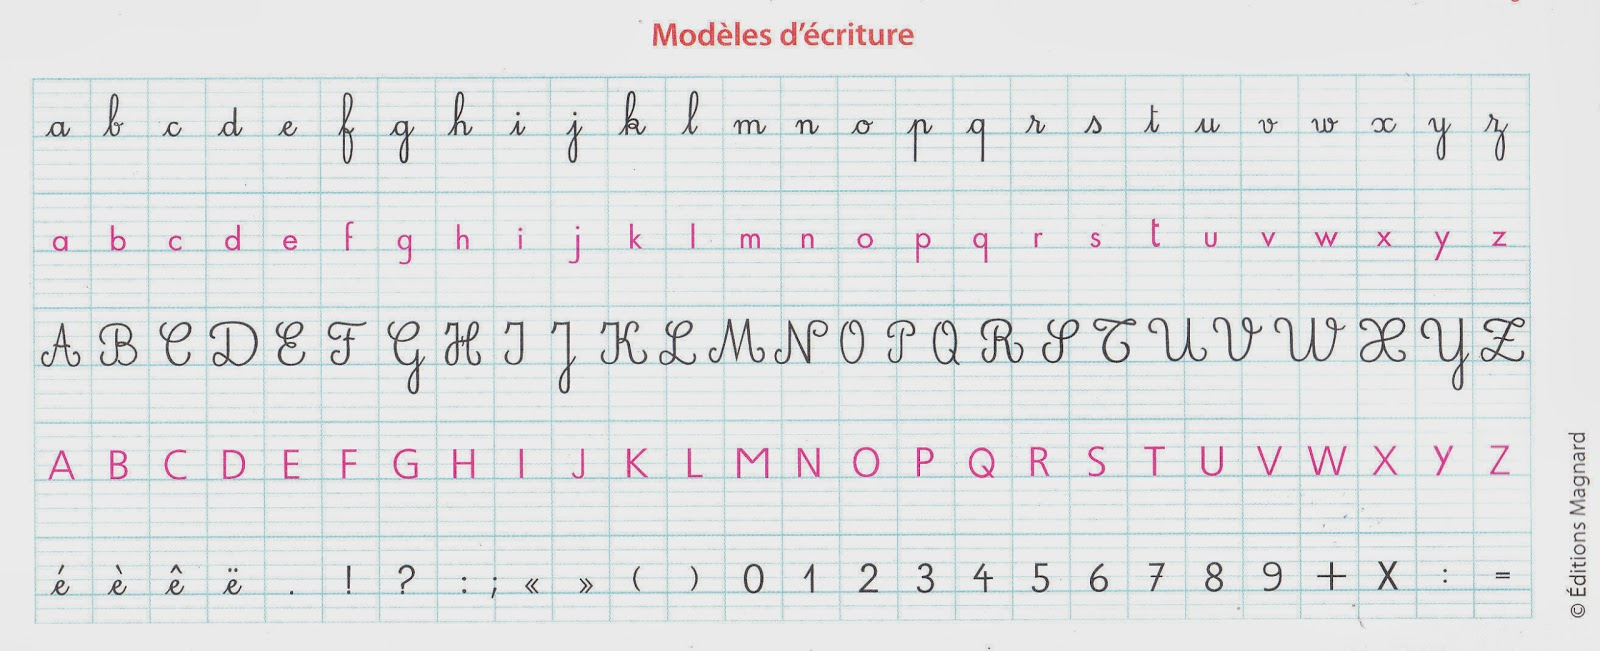 French Cursive Handwriting - K-8 Curriculum Board - The Well  alphabet worksheets, education, worksheets, math worksheets, worksheets for teachers, and printable worksheets Cursive Writing Capital Letters Worksheets 2 651 x 1600